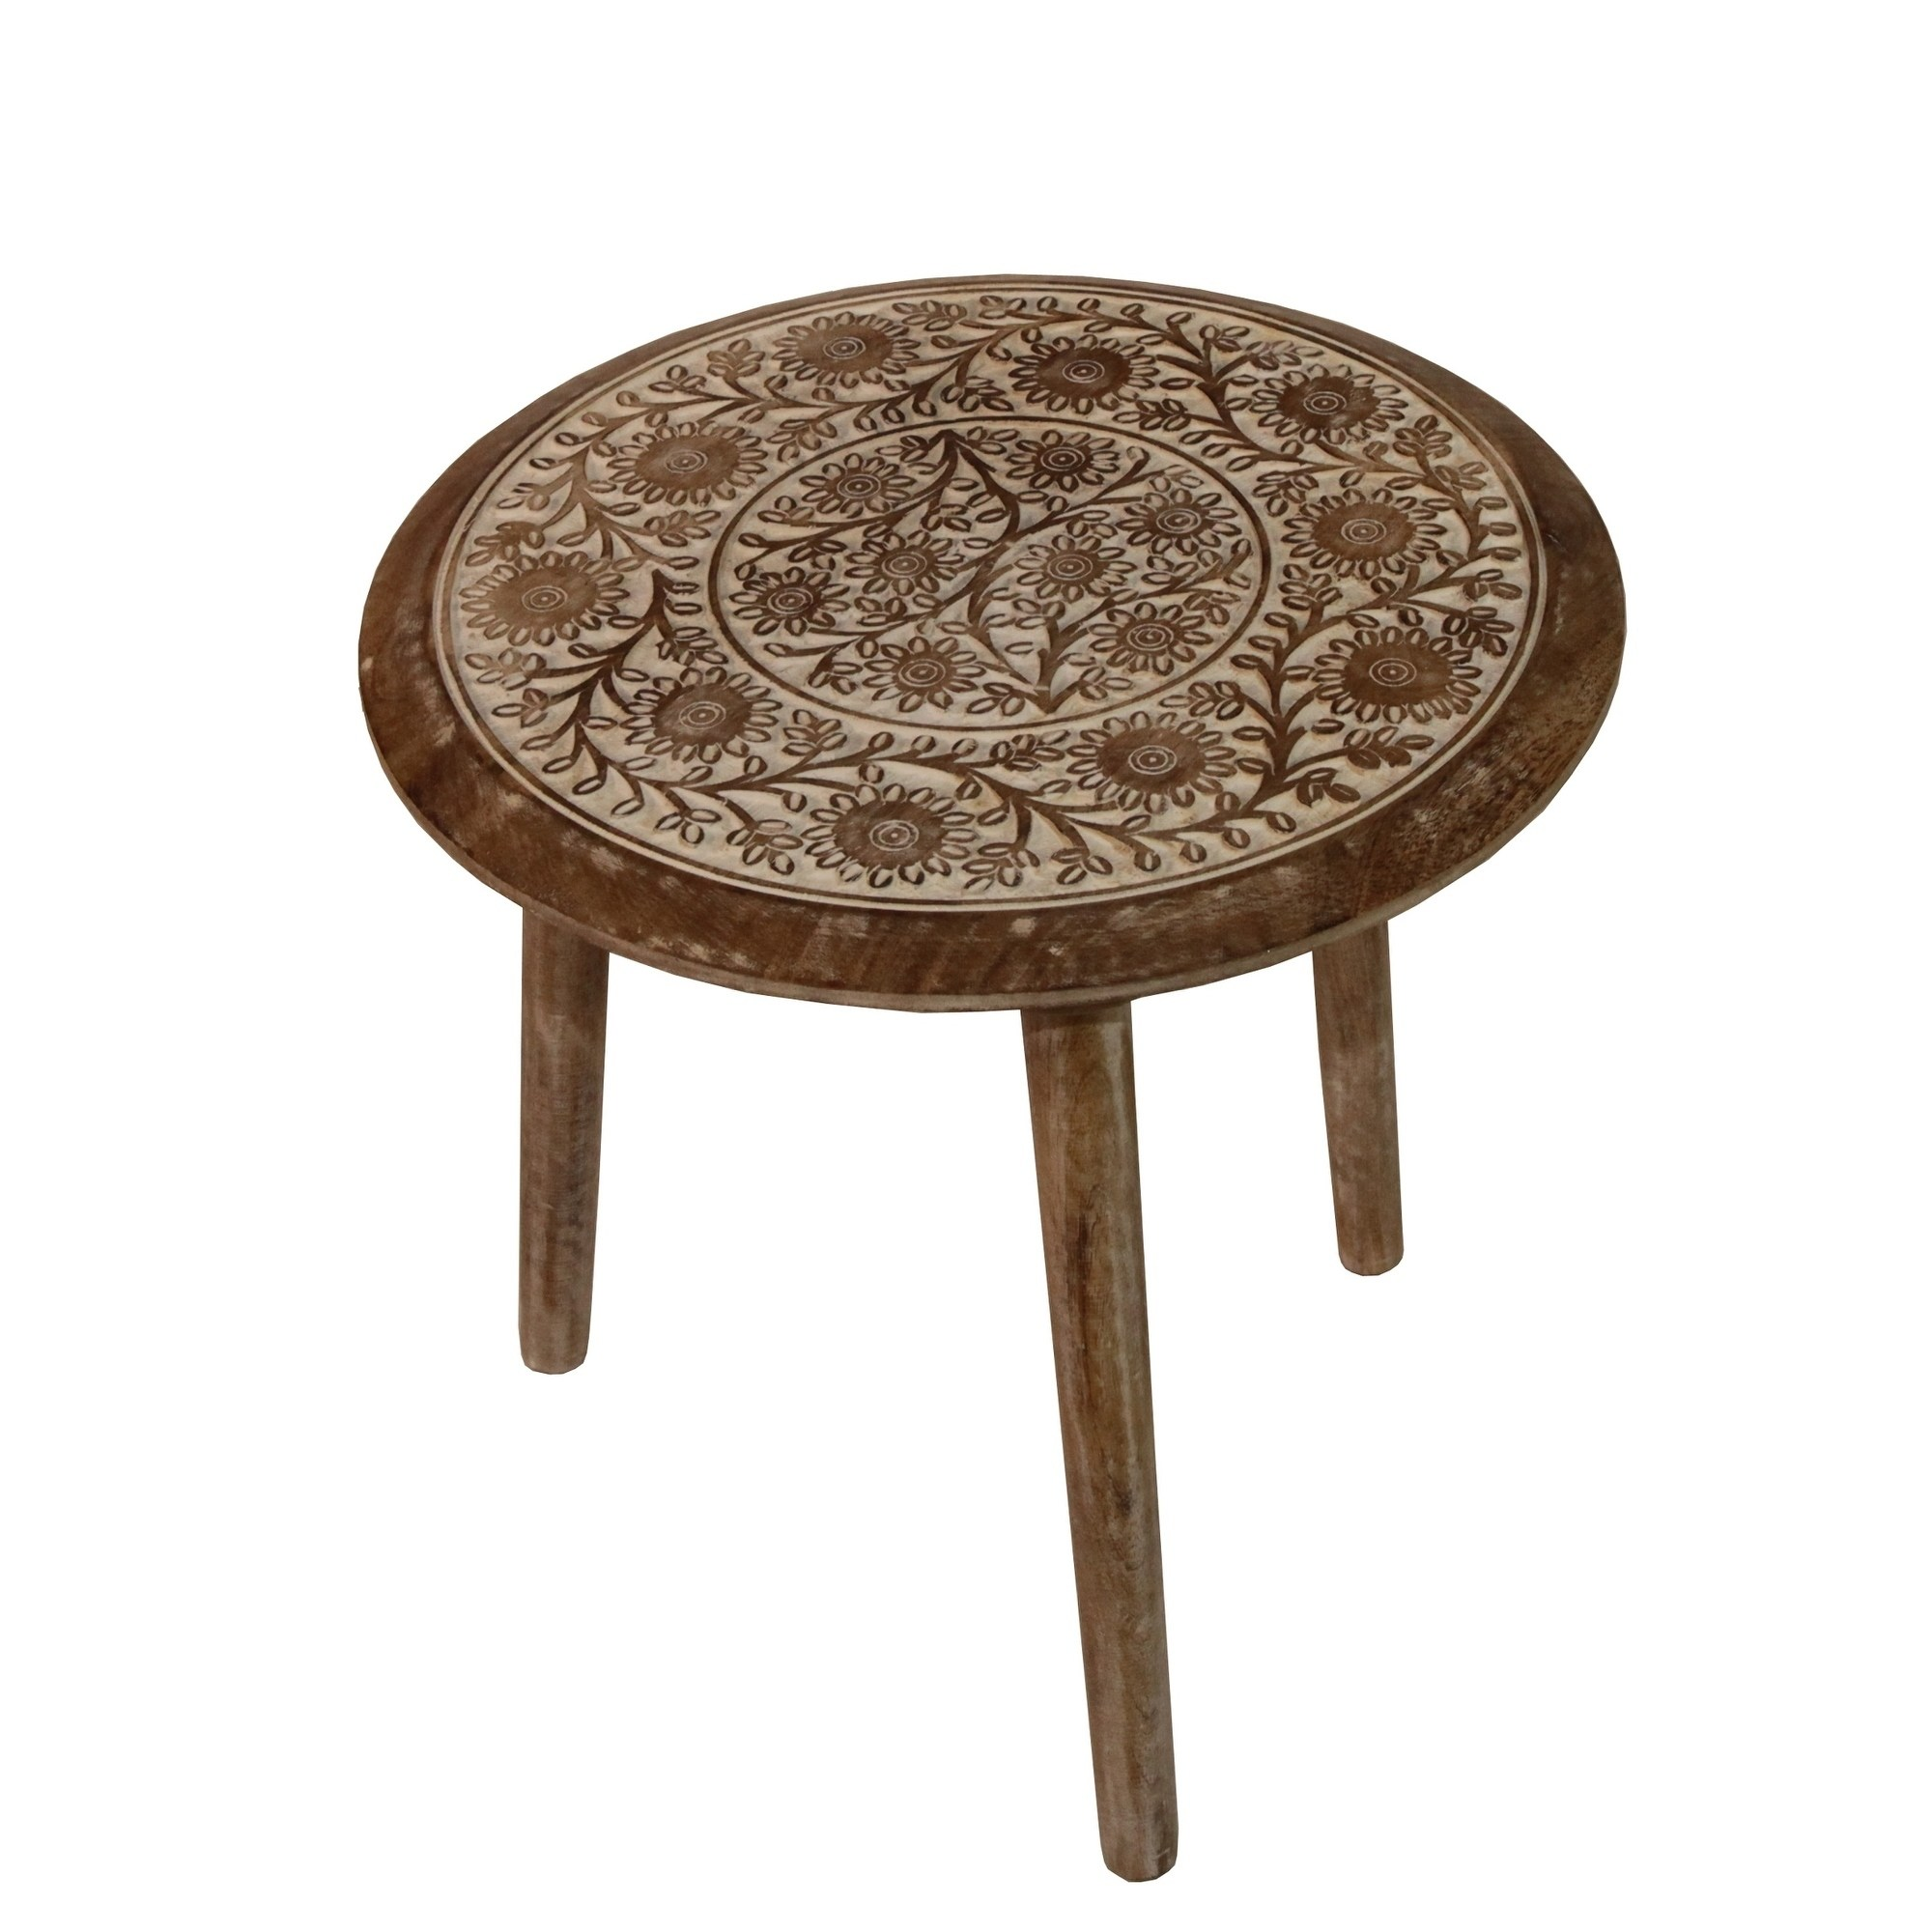 round antique white wood accent table free shipping today wooden vintage retro dining and chairs small marble black lacquer furniture tall skinny lamps ballard designs outdoor